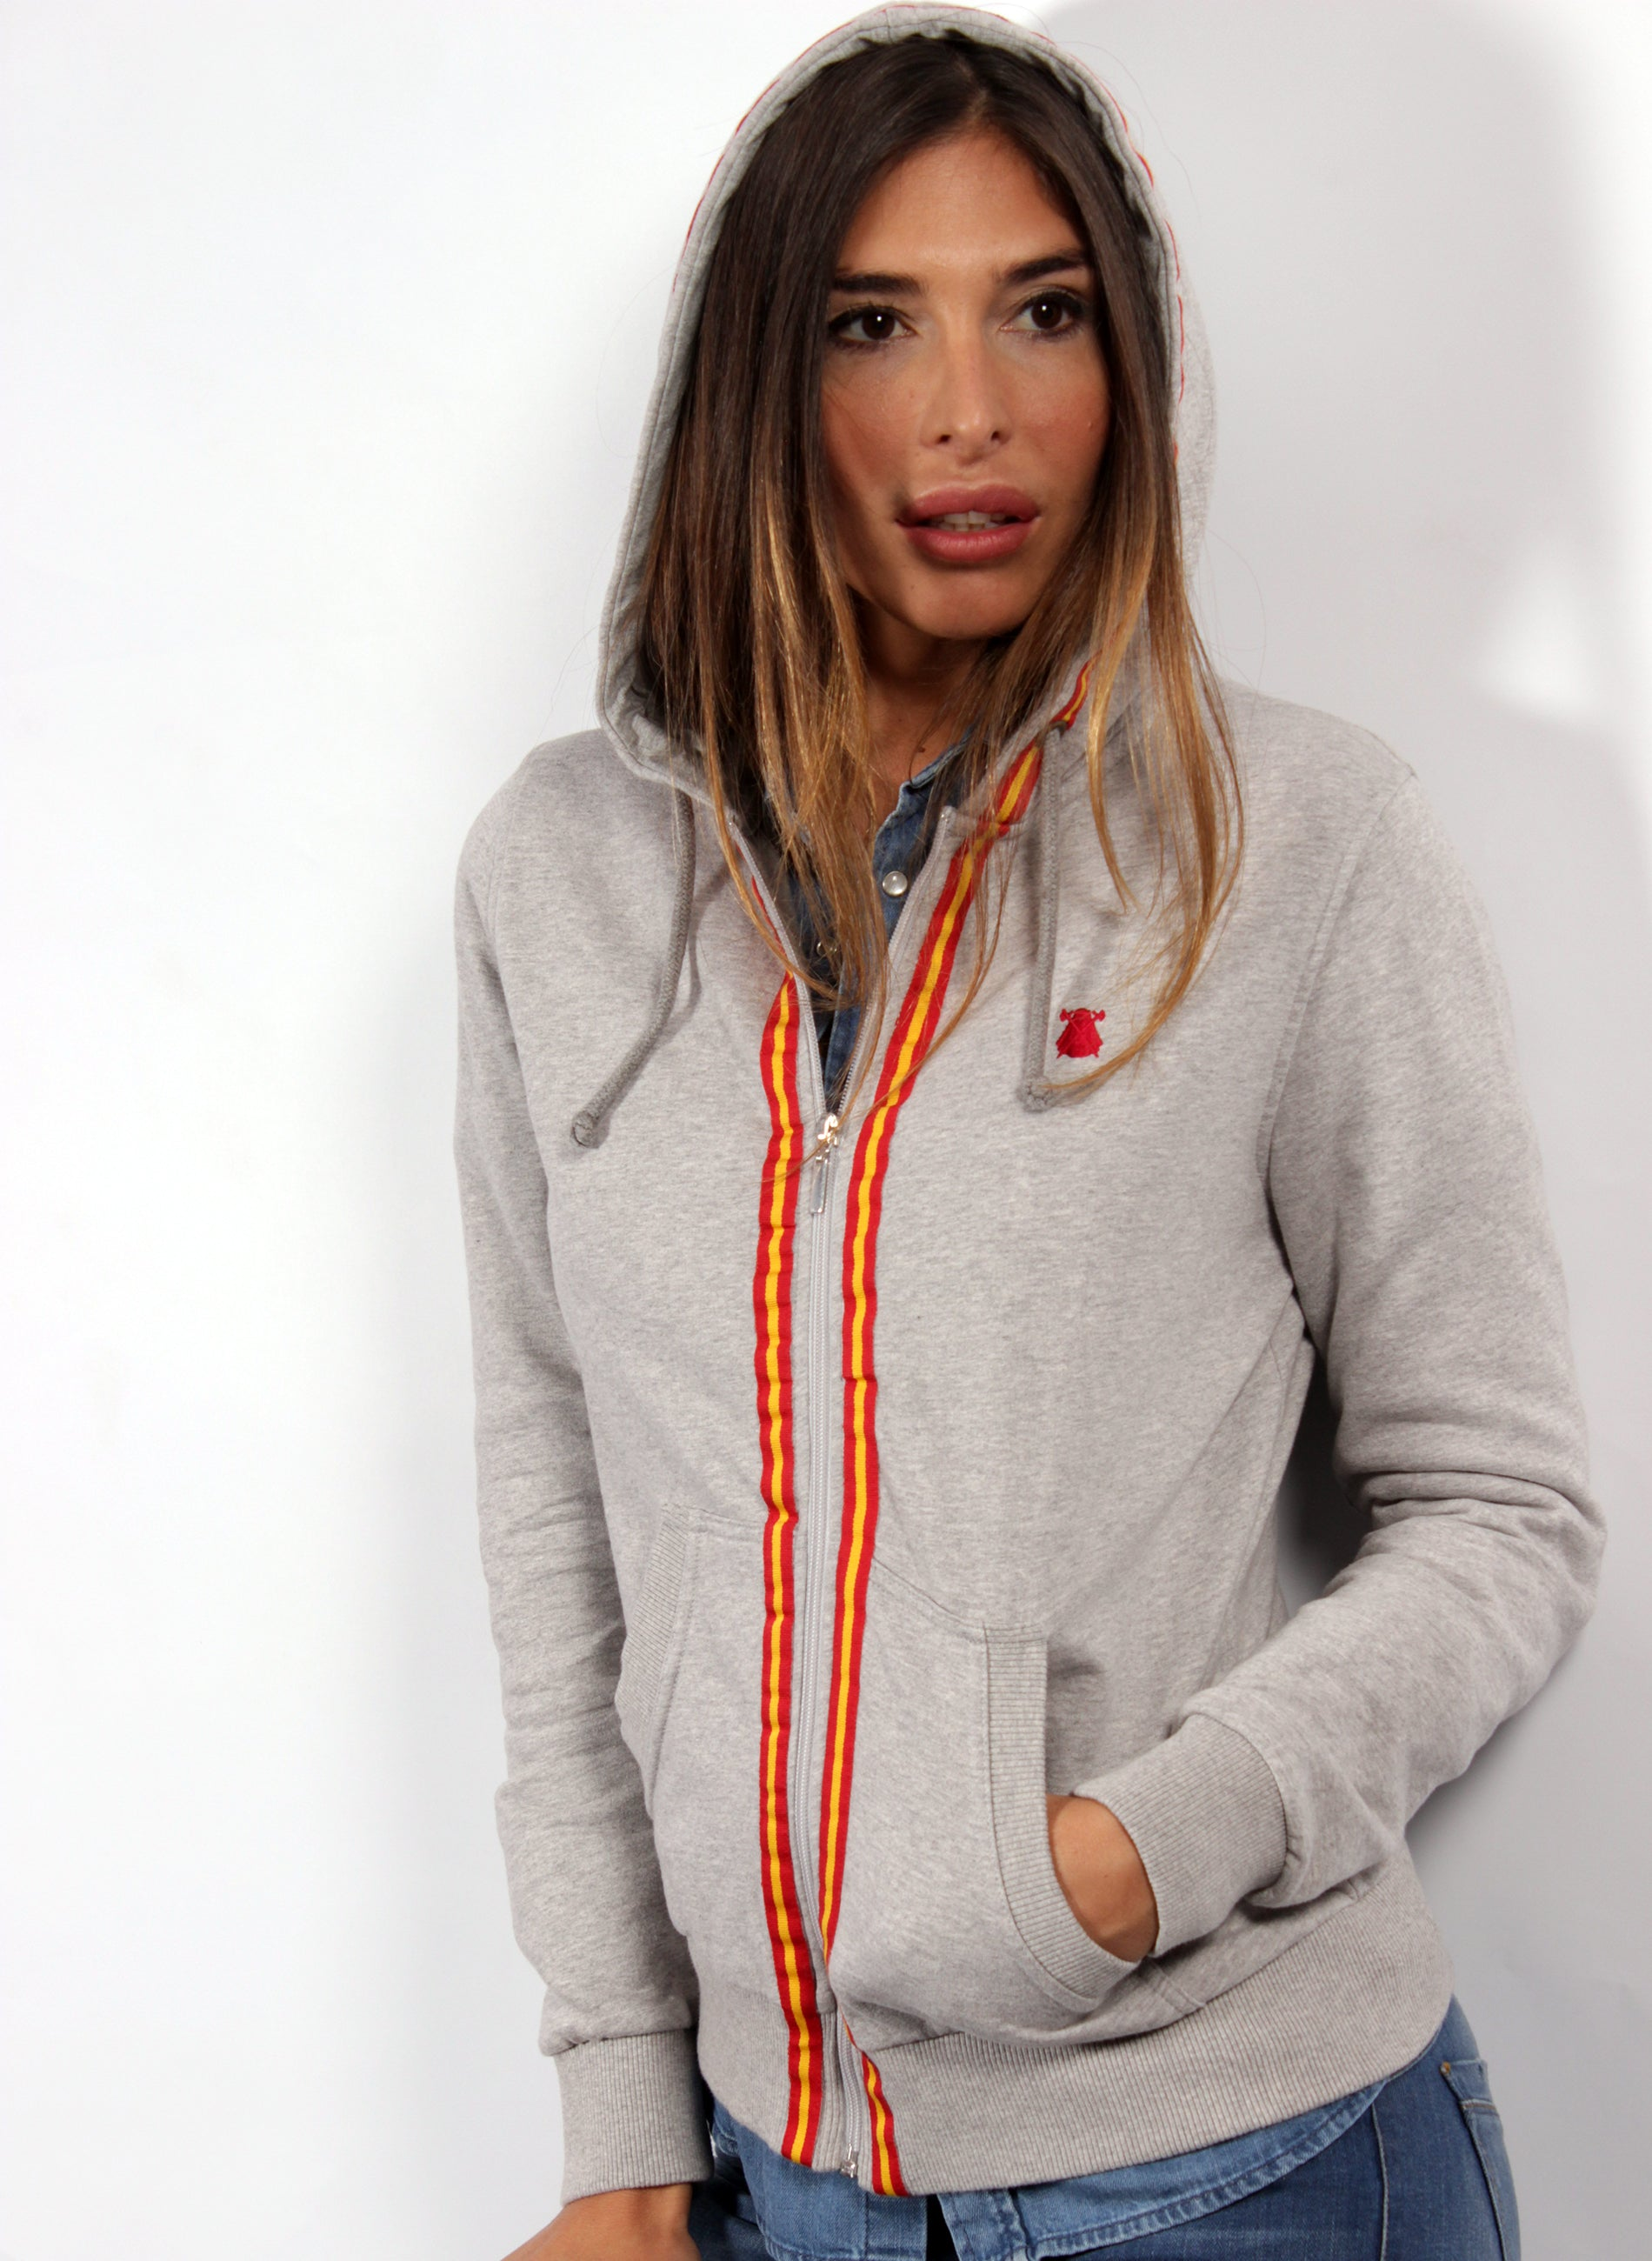 GRAY SWEATSHIRT WOMAN SPAIN